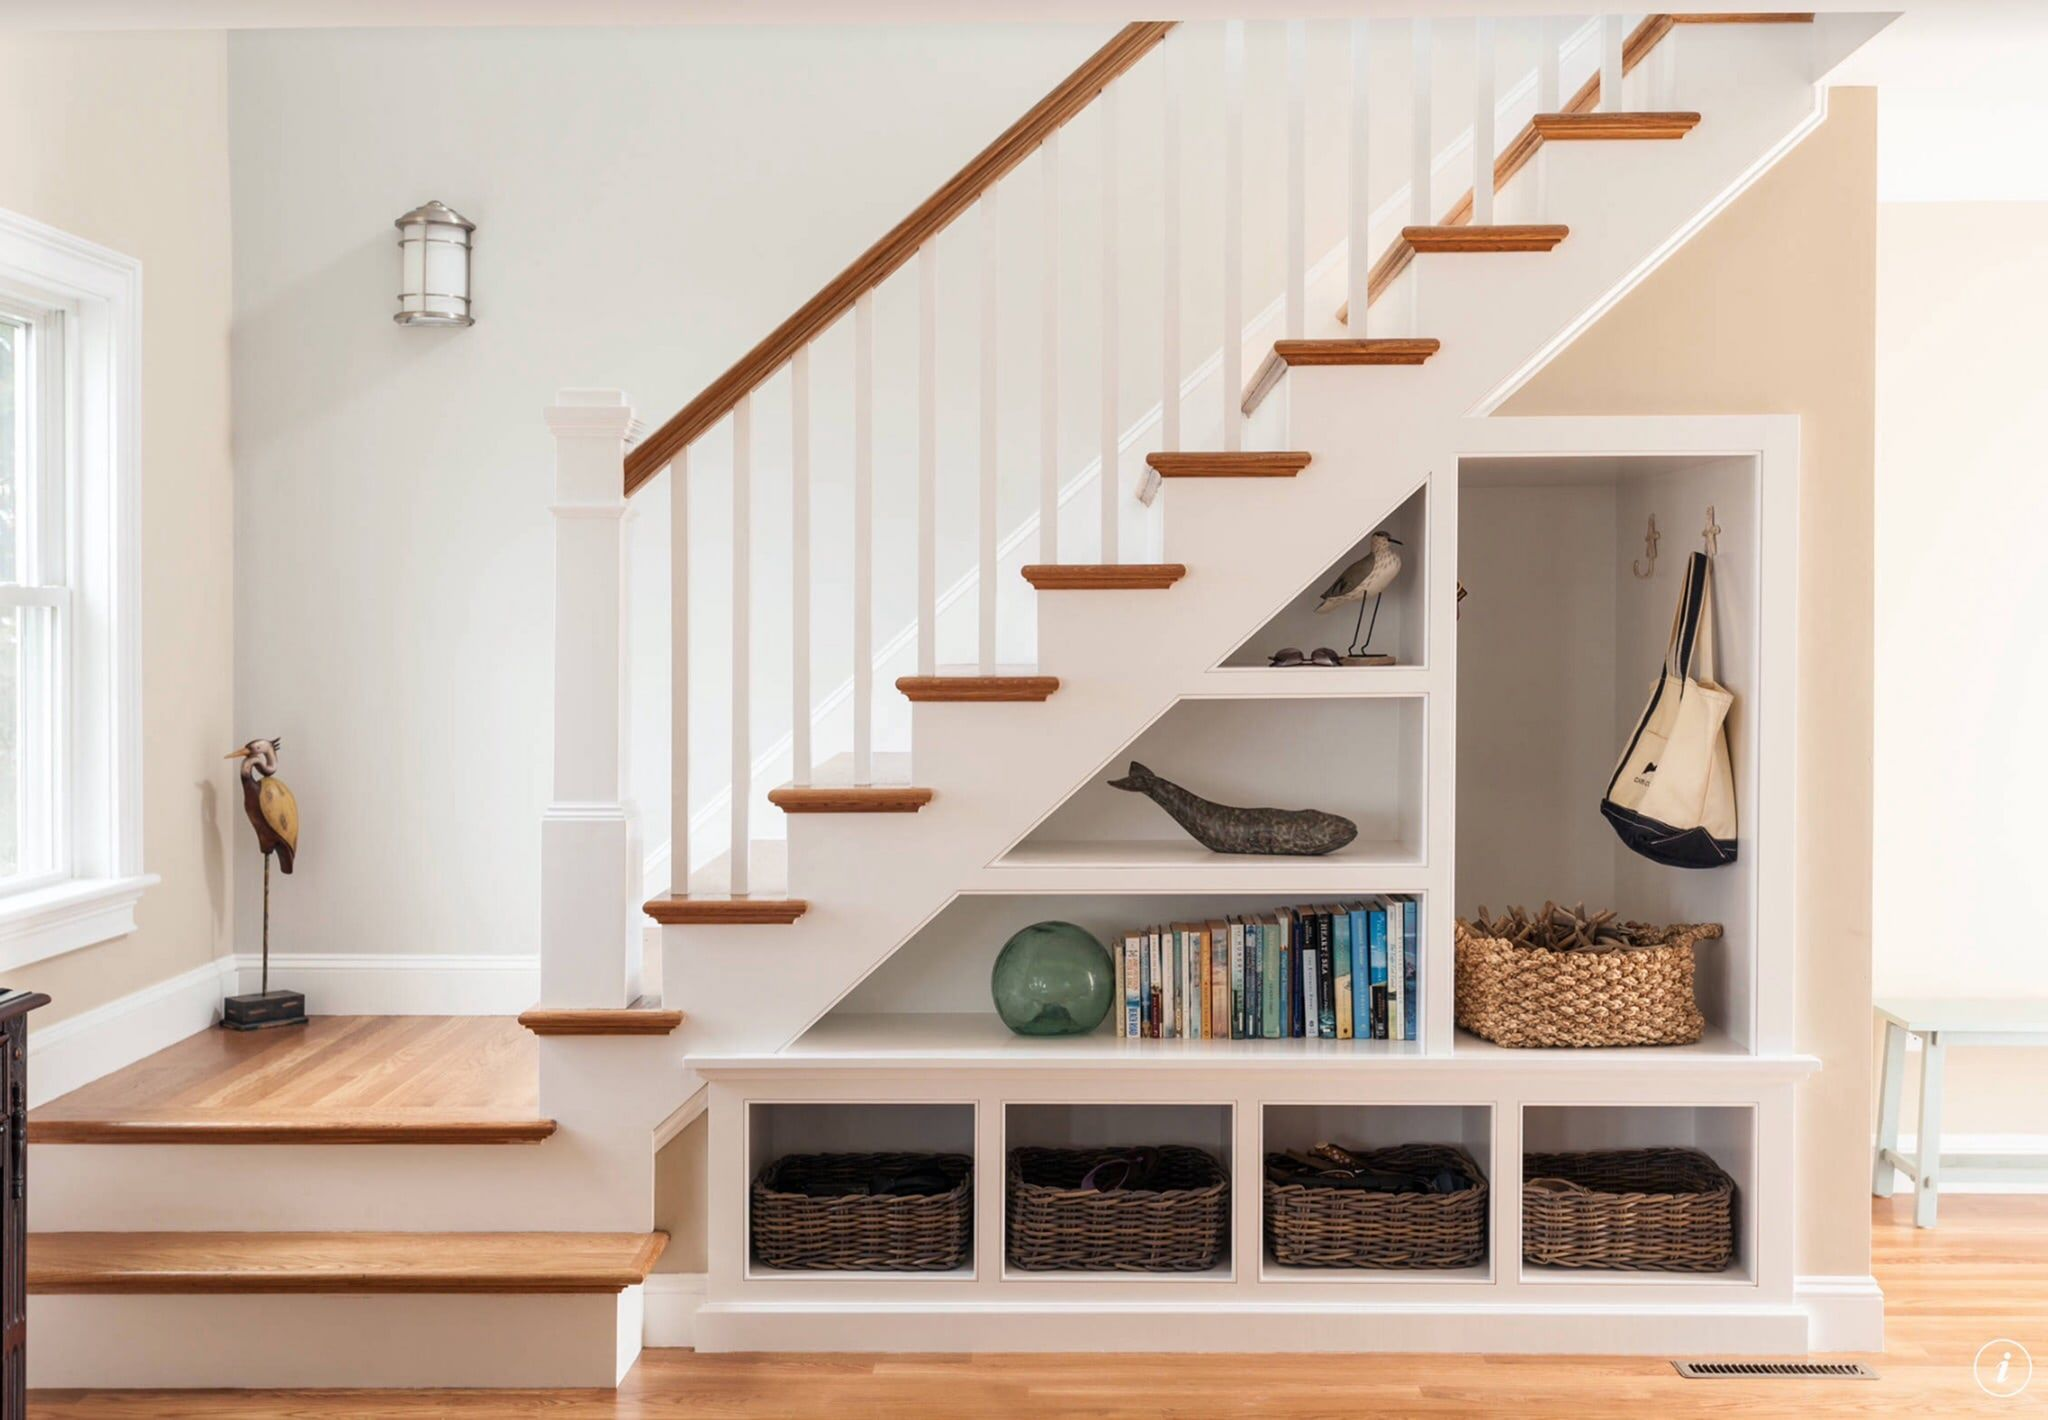 10 Awesome Stairs Indoor Design Ideas To Make Your Home Interior